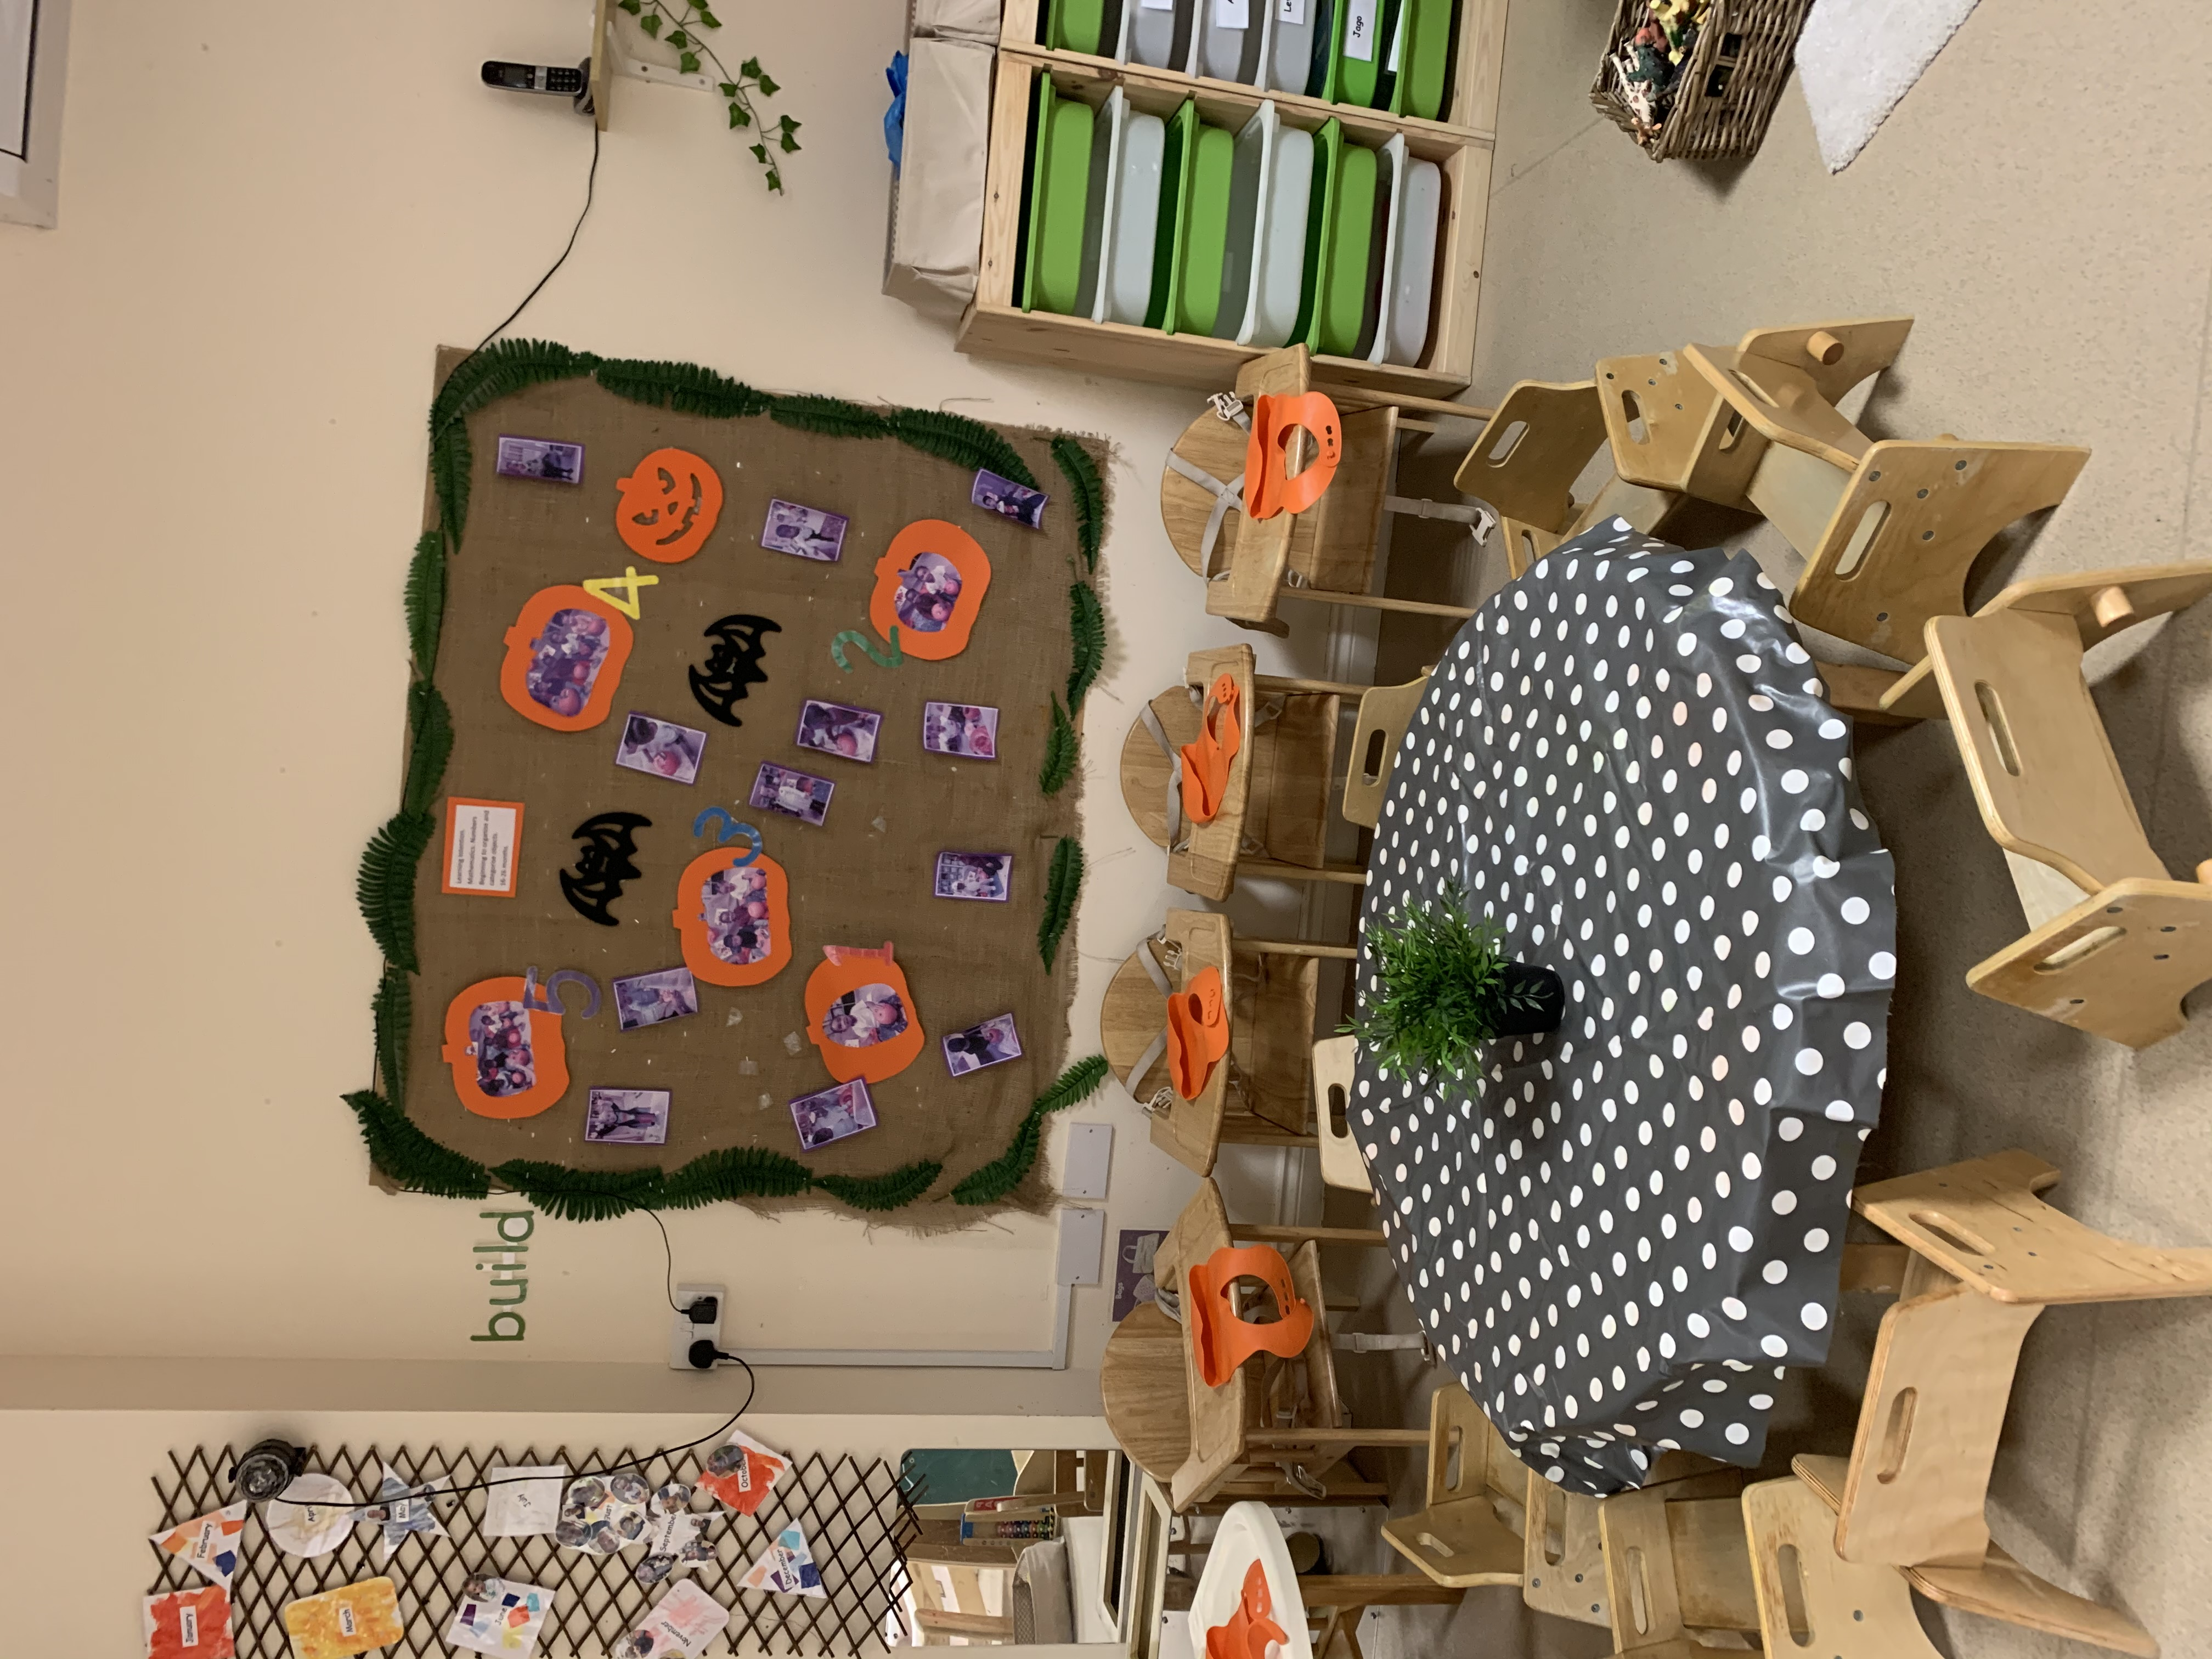 Gilwell Hill Nursery Chingford